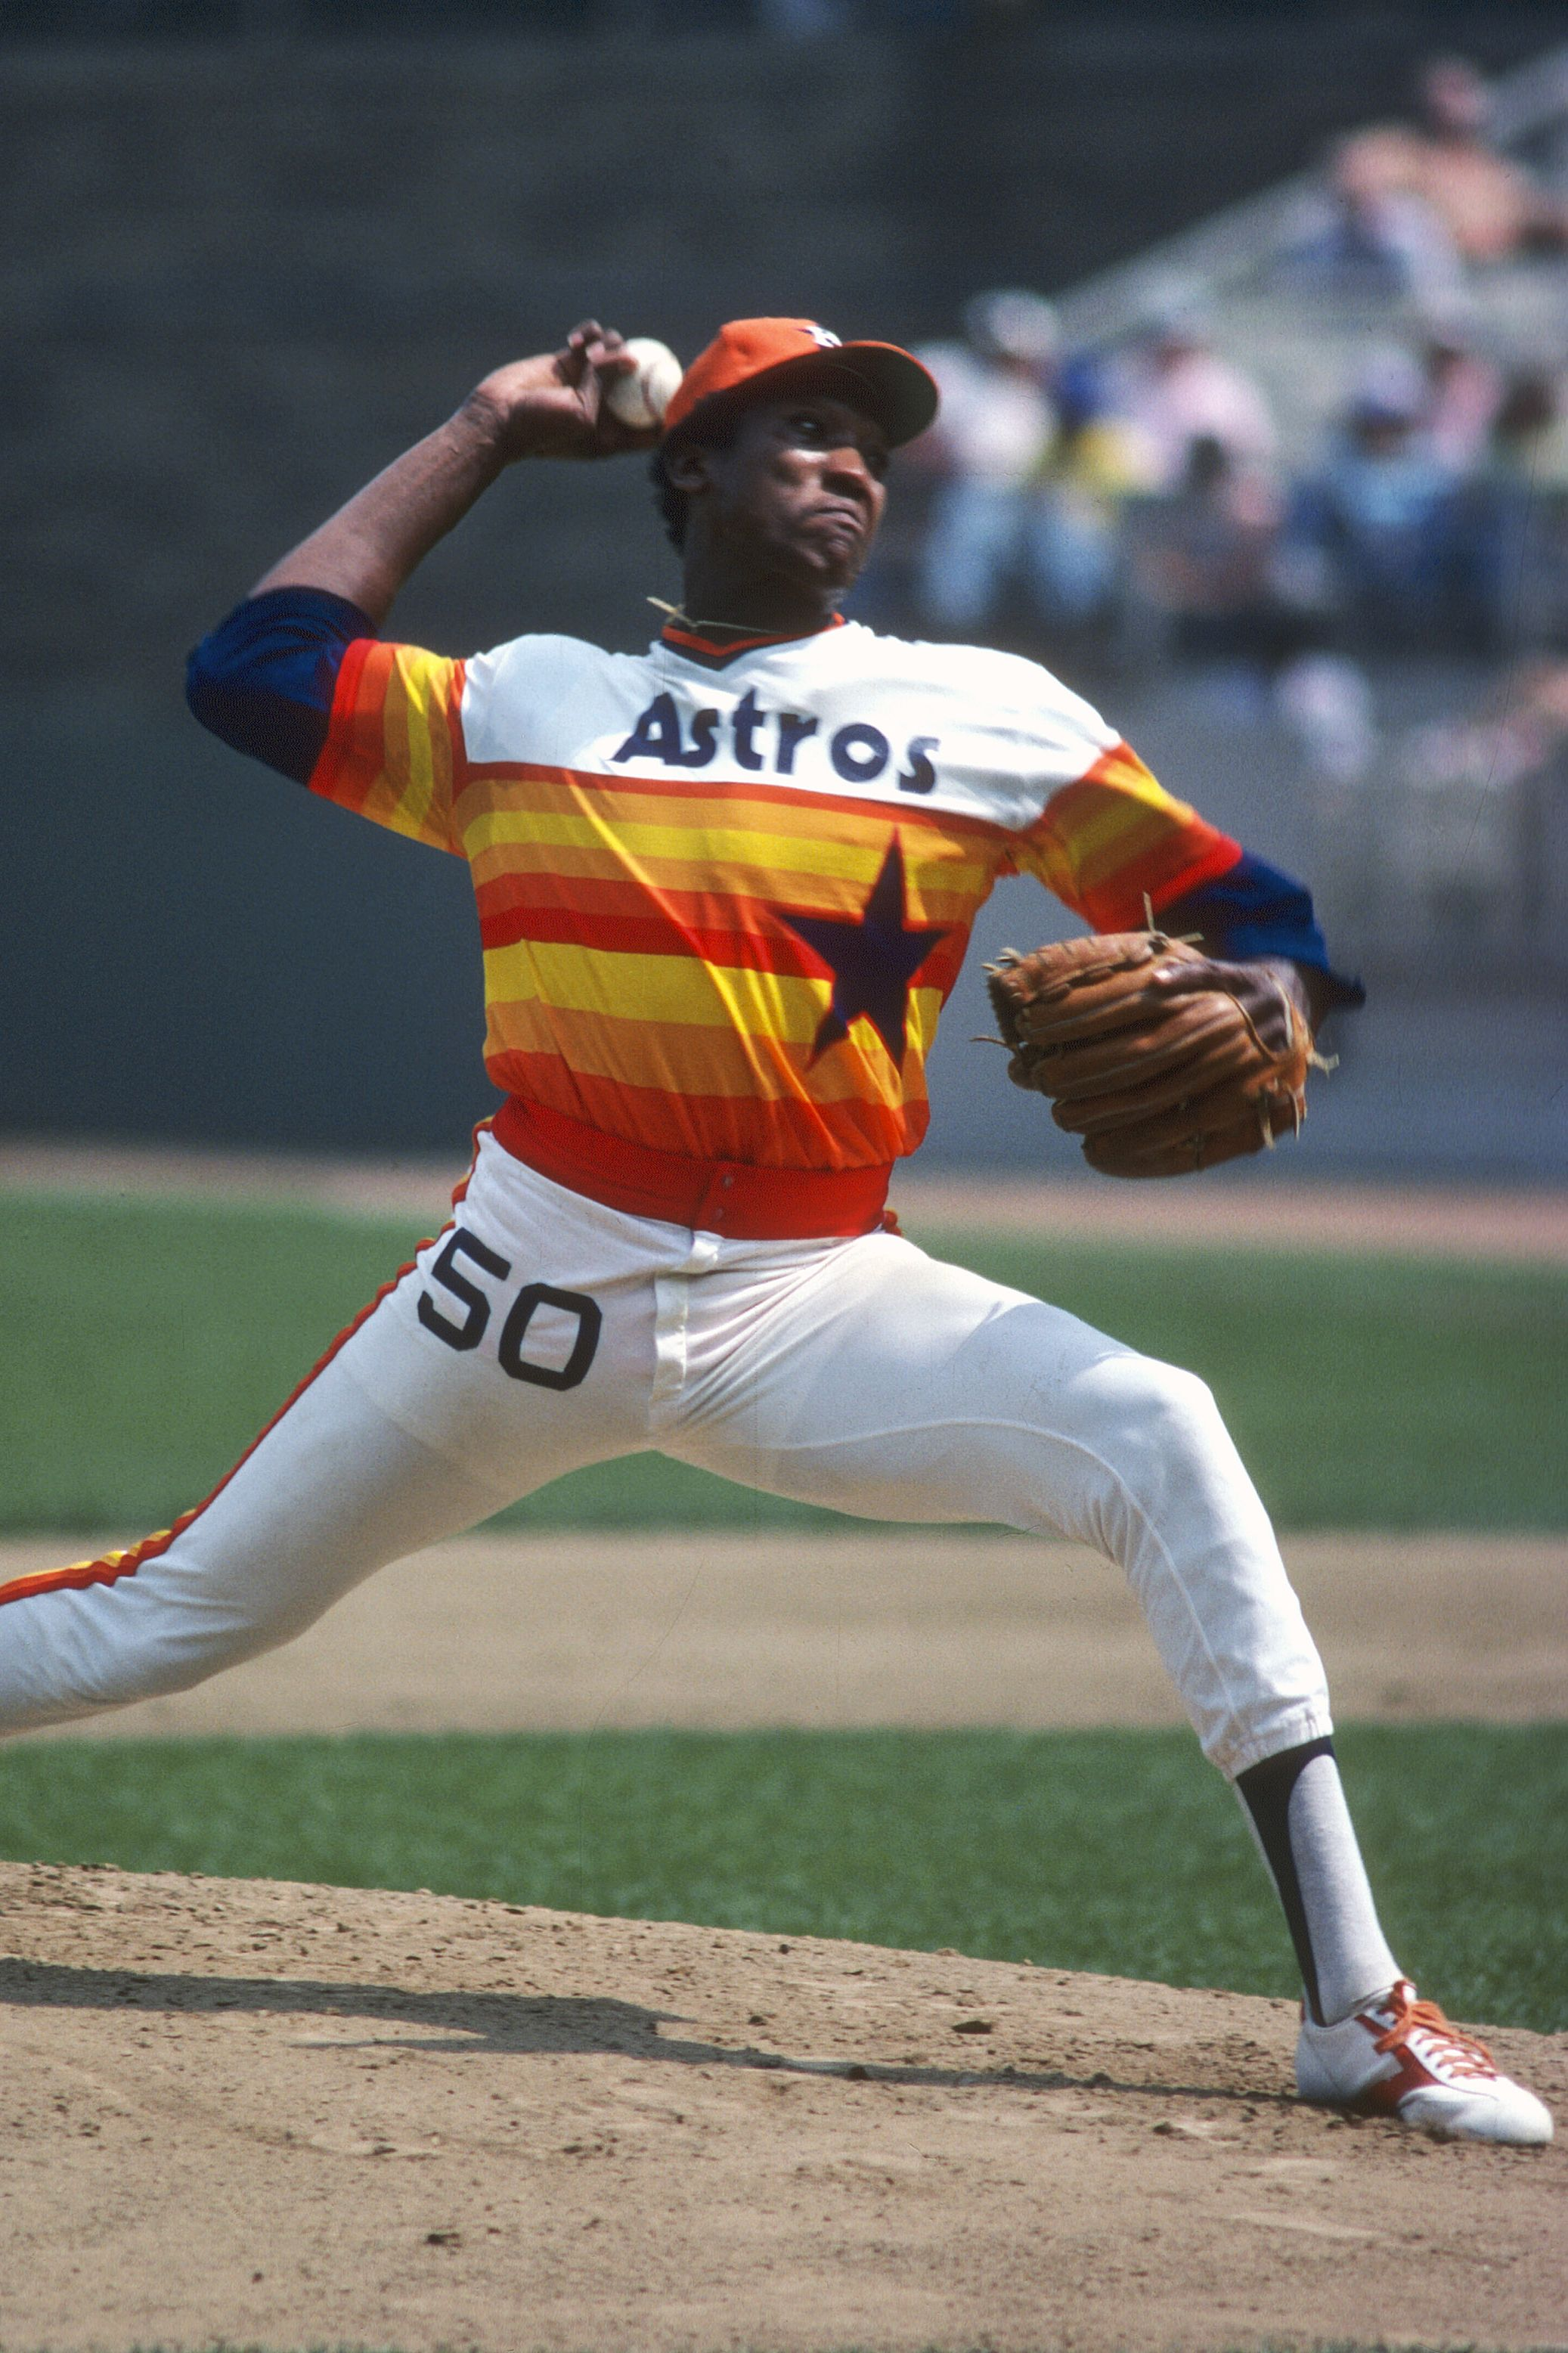 The Astros' tequila sunrise uniforms top the list of good-looking baseball styles